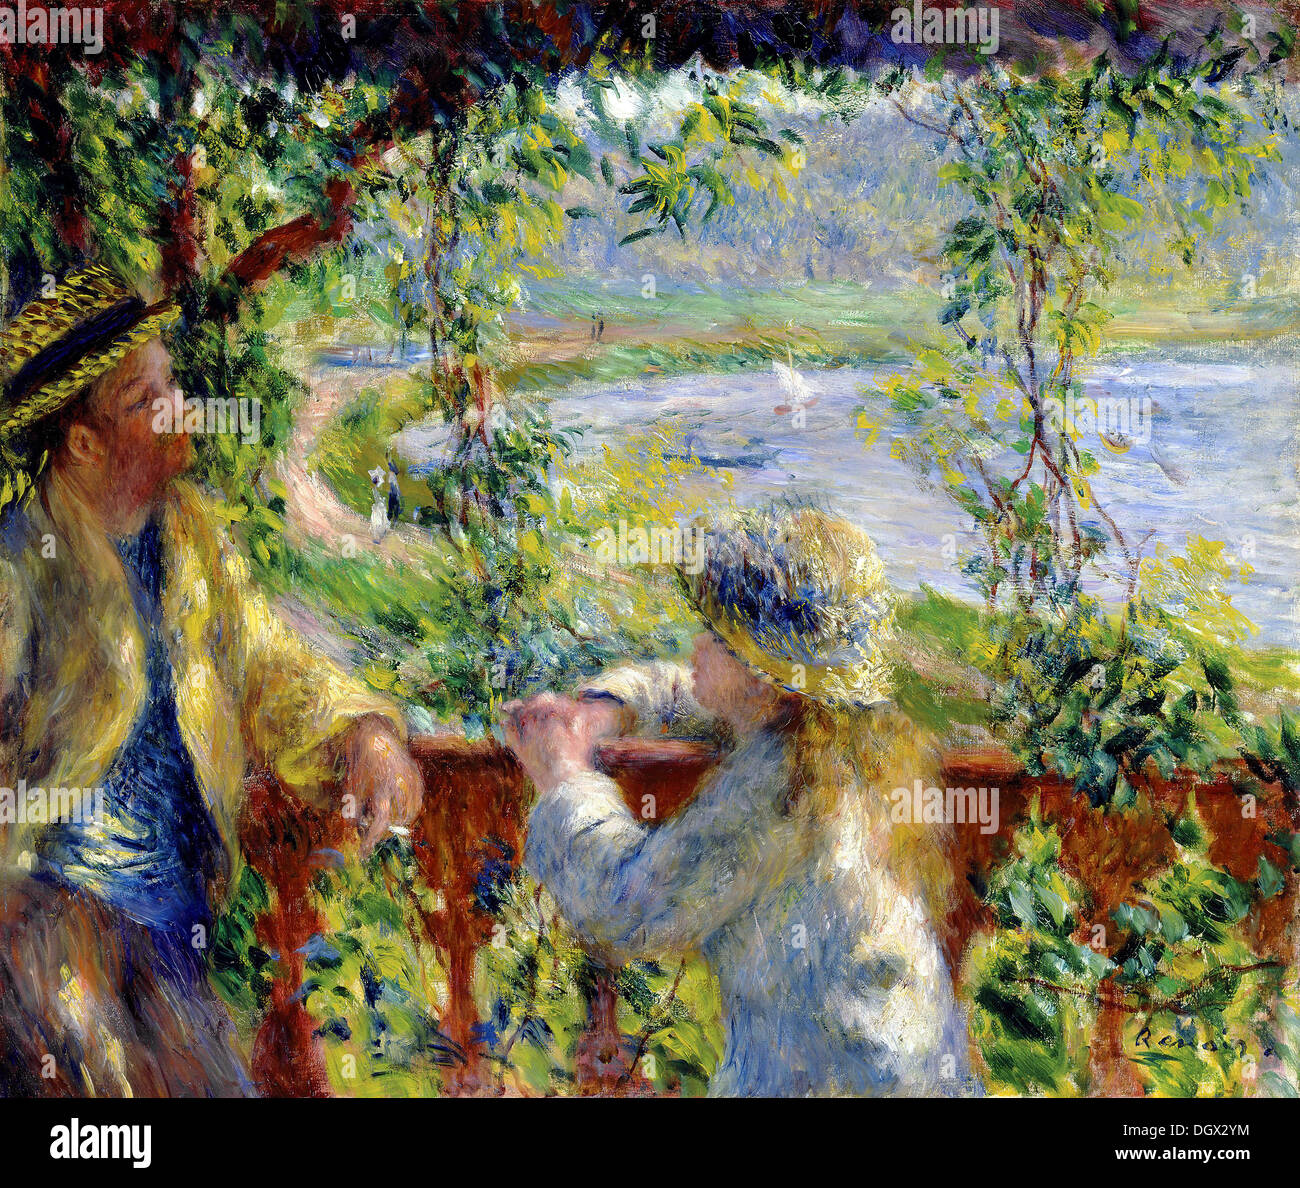 By the Water - by Pierre-Auguste Renoir, 1880 - Stock Image